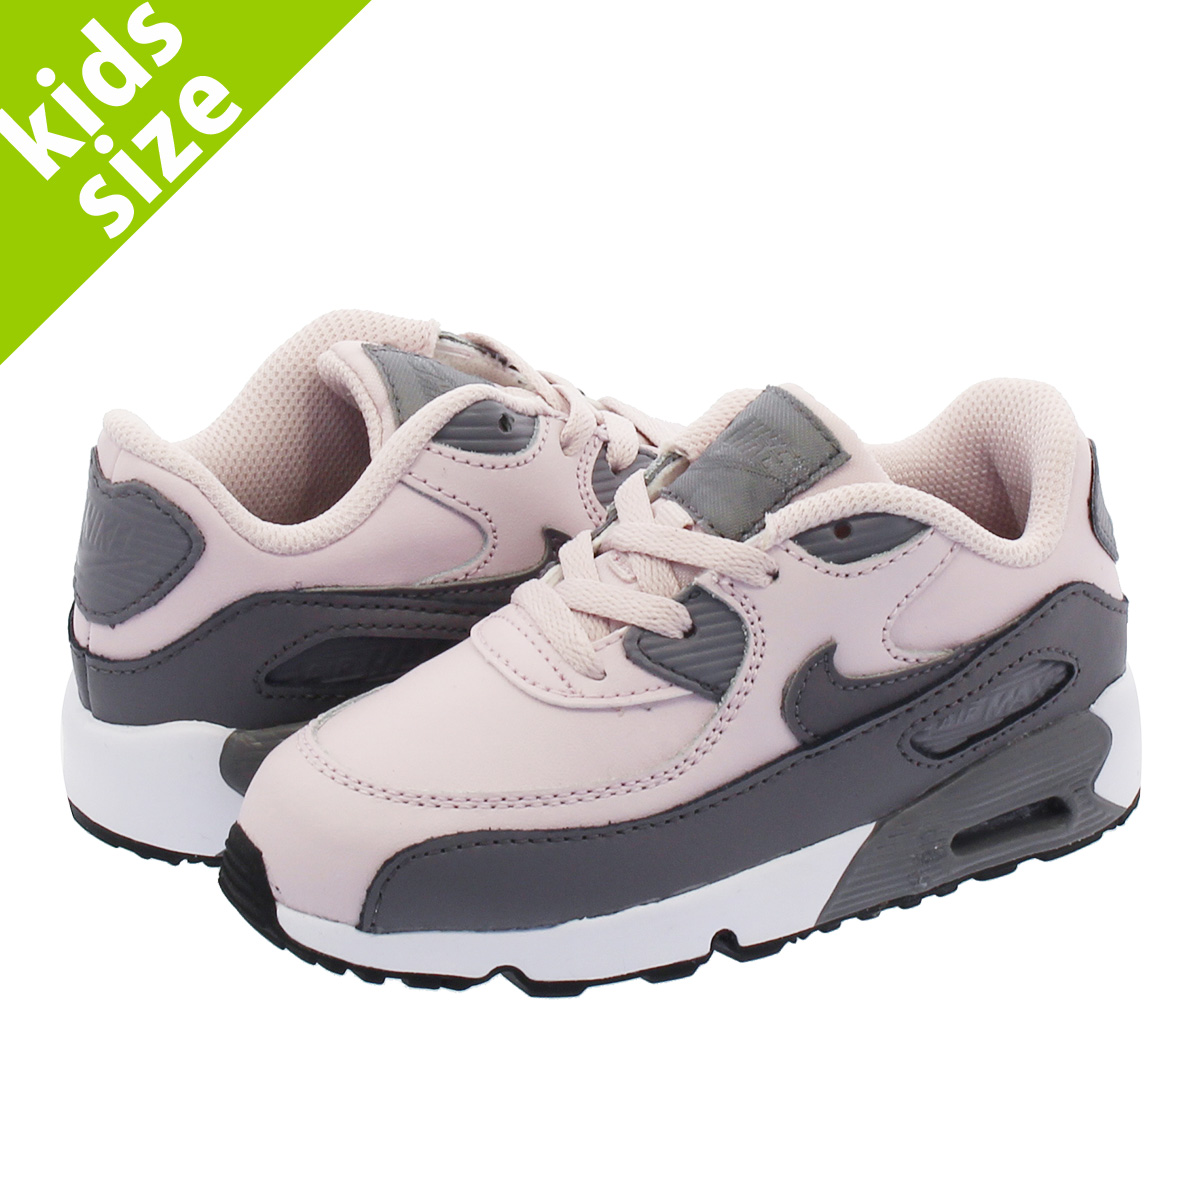 sale retailer 92835 75428 SELECT SHOP LOWTEX NIKE AIR MAX 90 LTR TD Kie Ney AMAX 90 leather TD  BARELY ROSEGREY 833,379-601  Rakuten Global Market